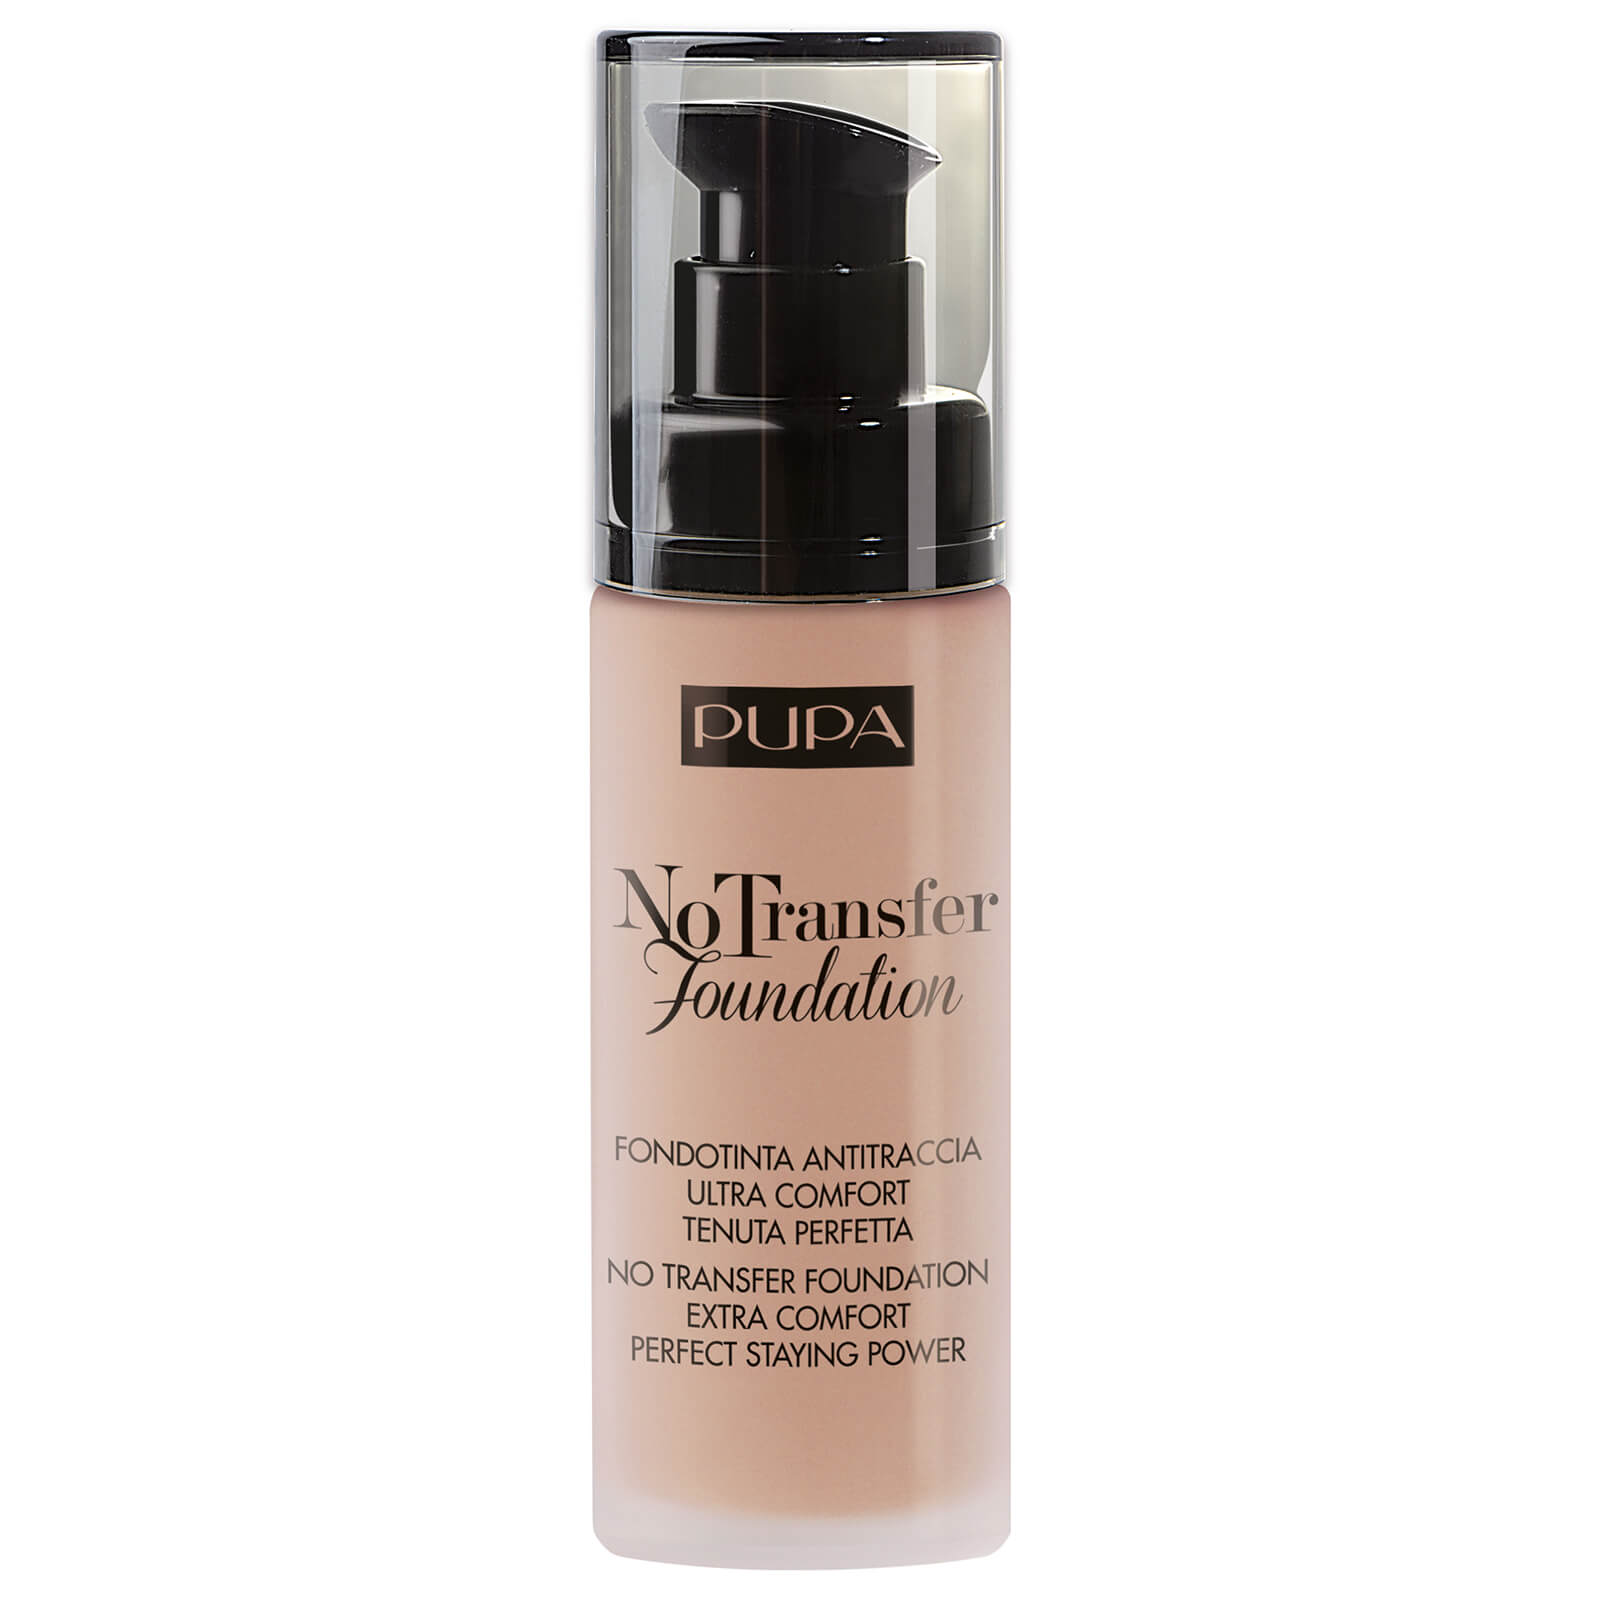 PUPA No Transfer Foundation 30ml (Various Shades) - Medium Beige